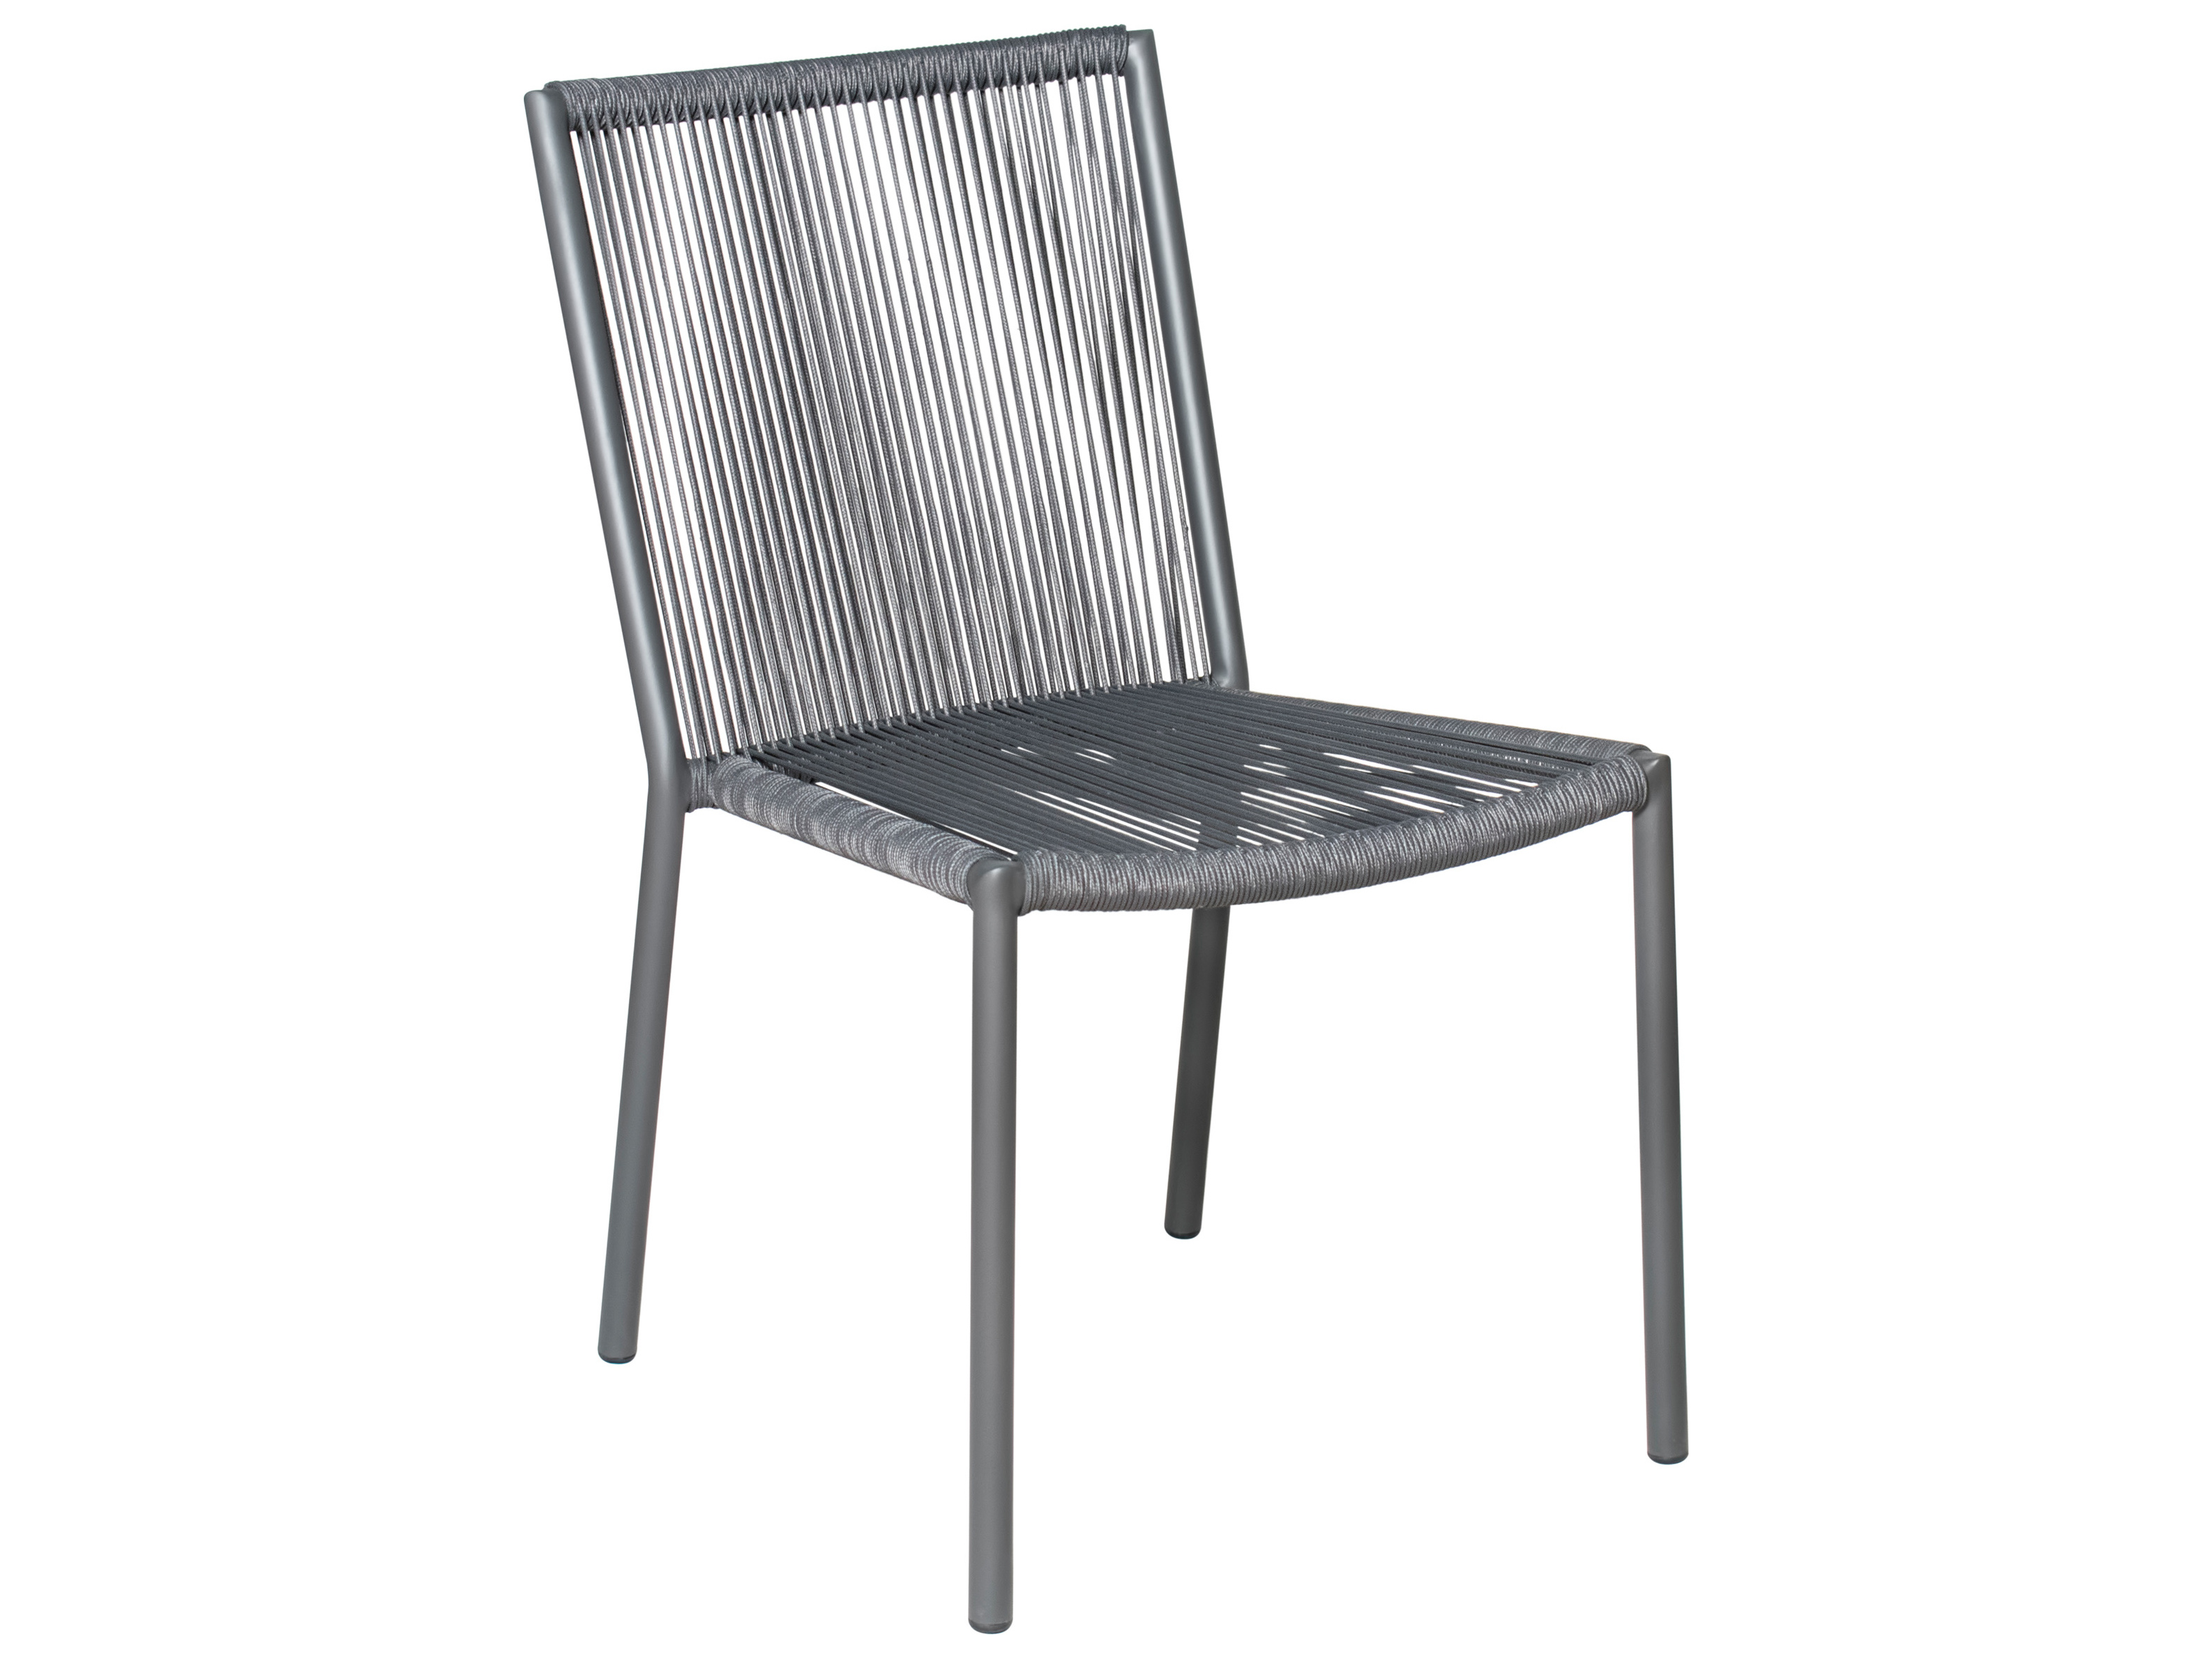 Home Affaire Stockholm Seasonal Living Archipelago Dark Gray Aluminum Stockholm Dining Side Chair Set Price Includes 2